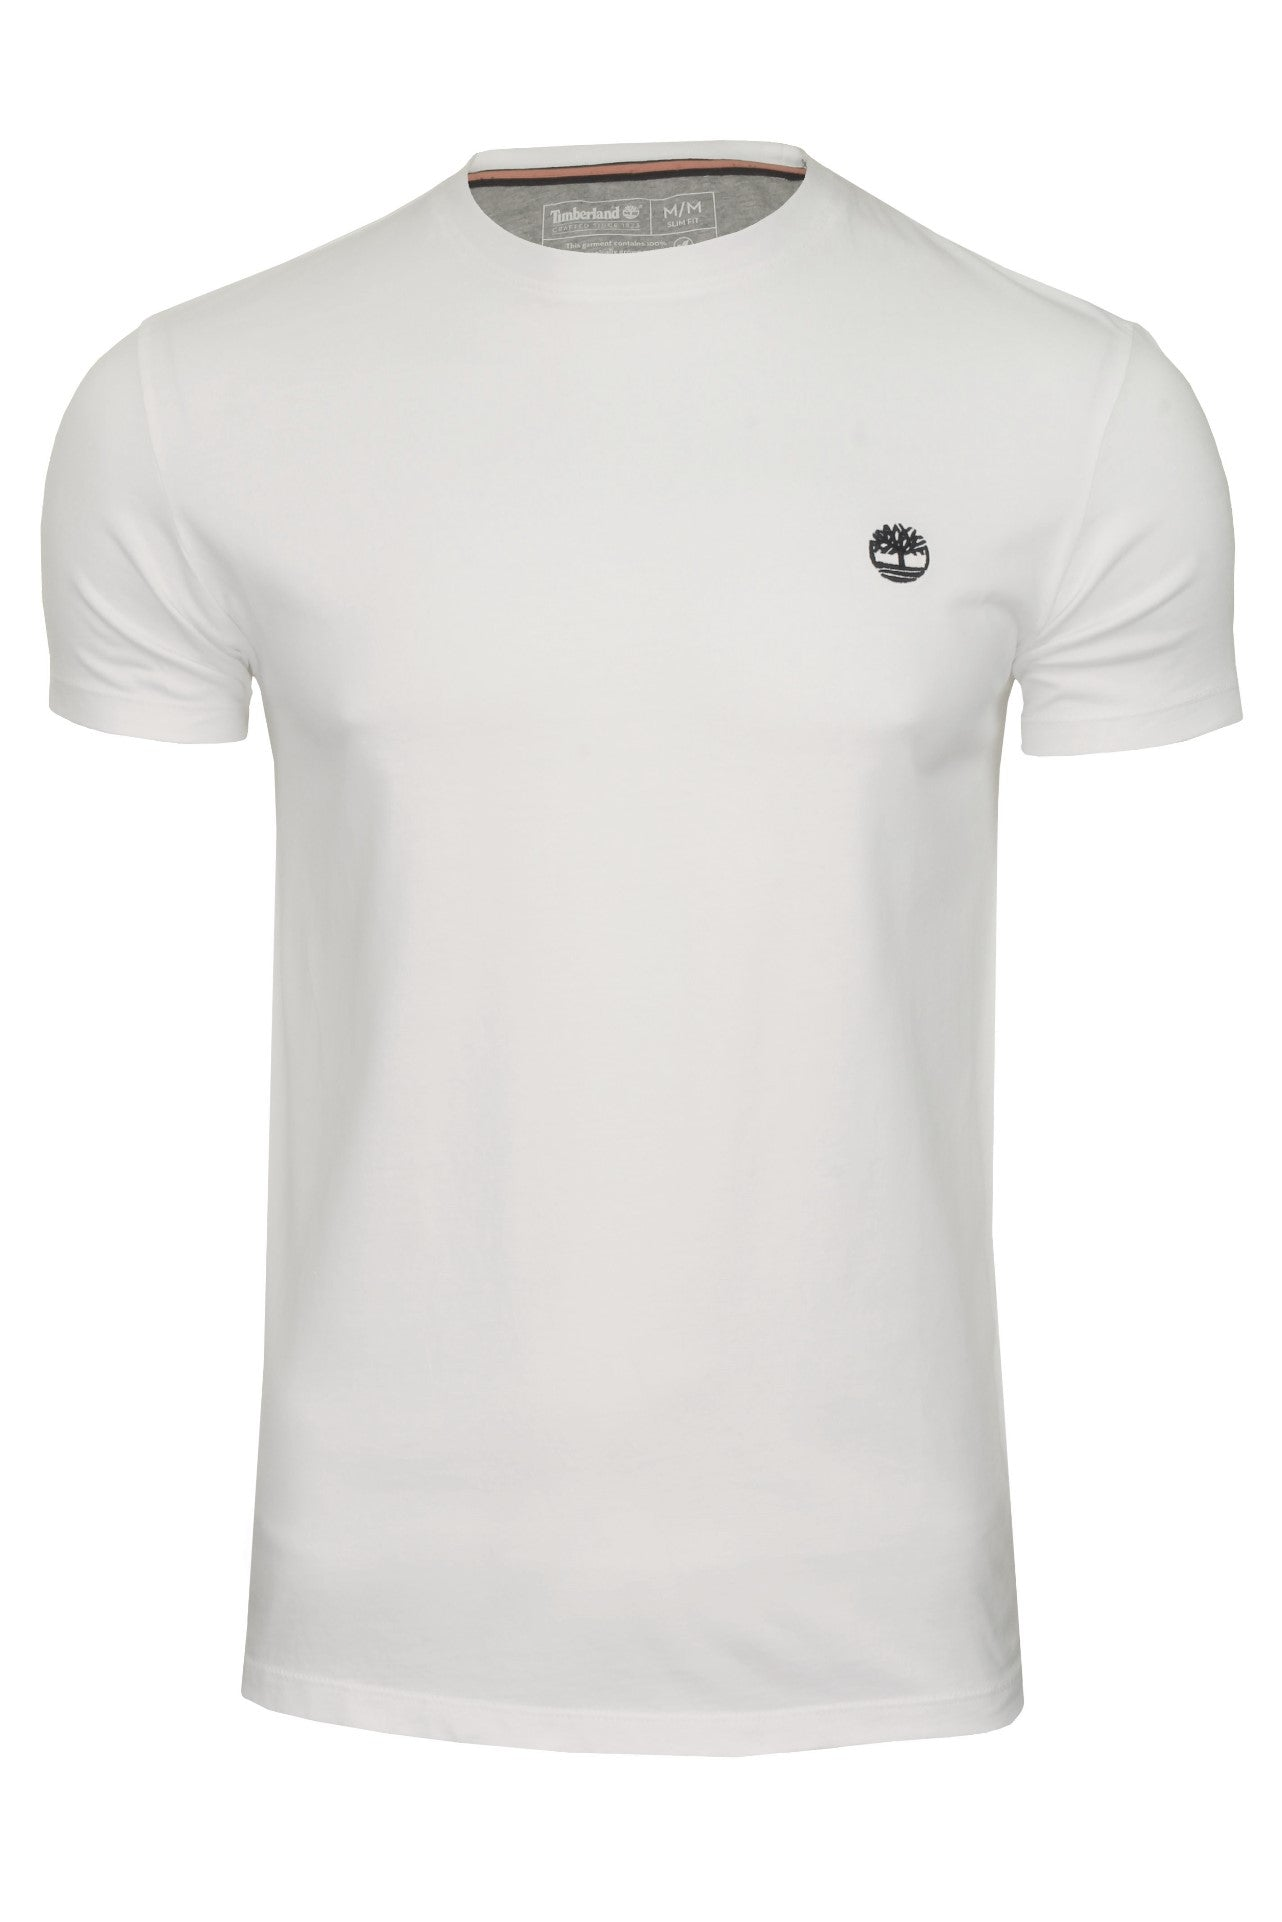 Timberland Mens Crew Neck T-Shirt 'Dunstan River Jersey Crew' - Short Sleeved_01_Tb0A2Bpr_White